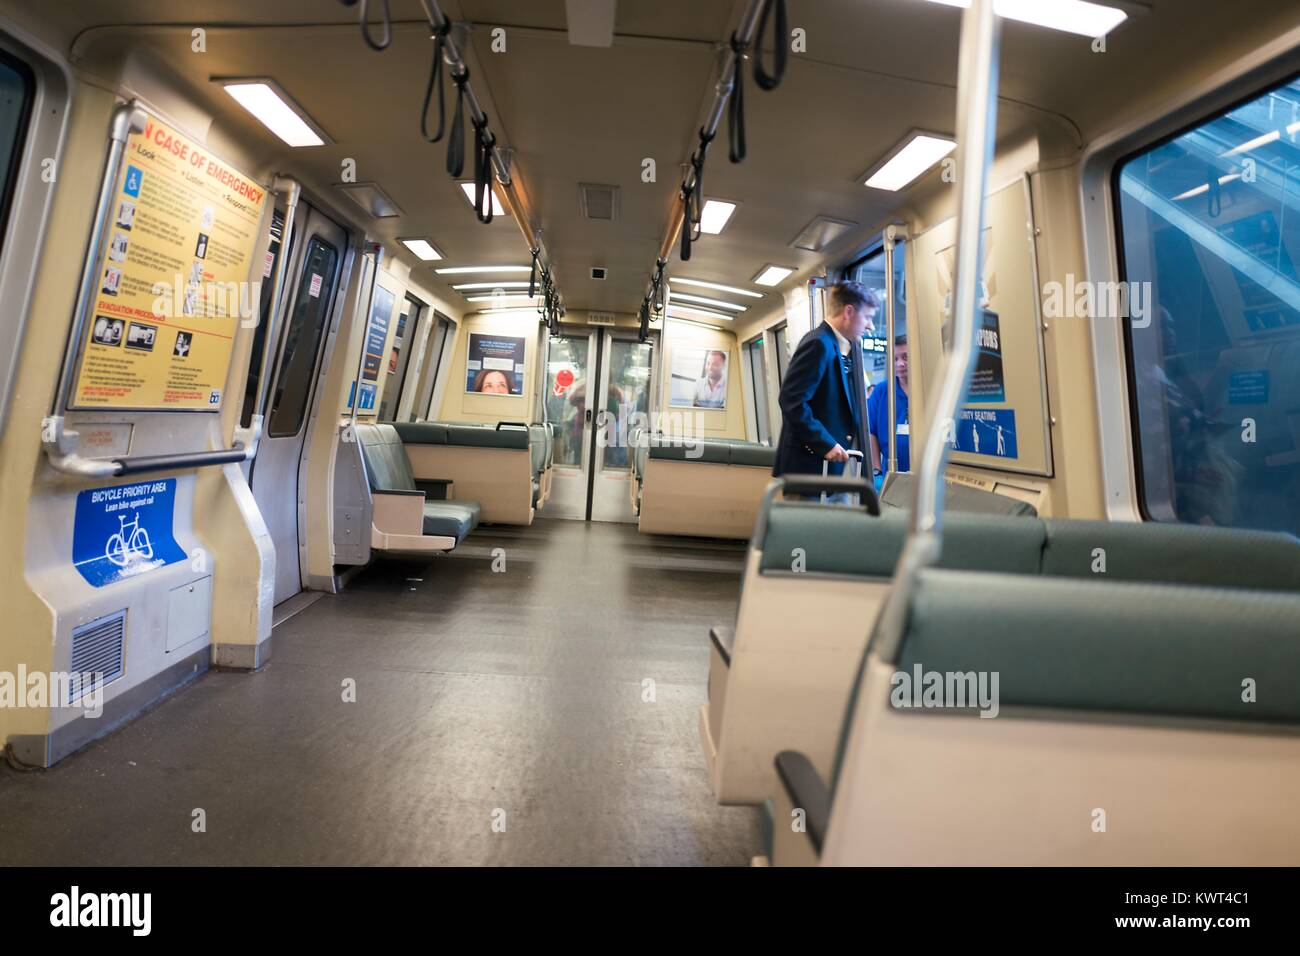 A man in a business suit exits a Bay Area Rapid Transit (BART) light rail train at San Francisco International Airport, - Stock Image